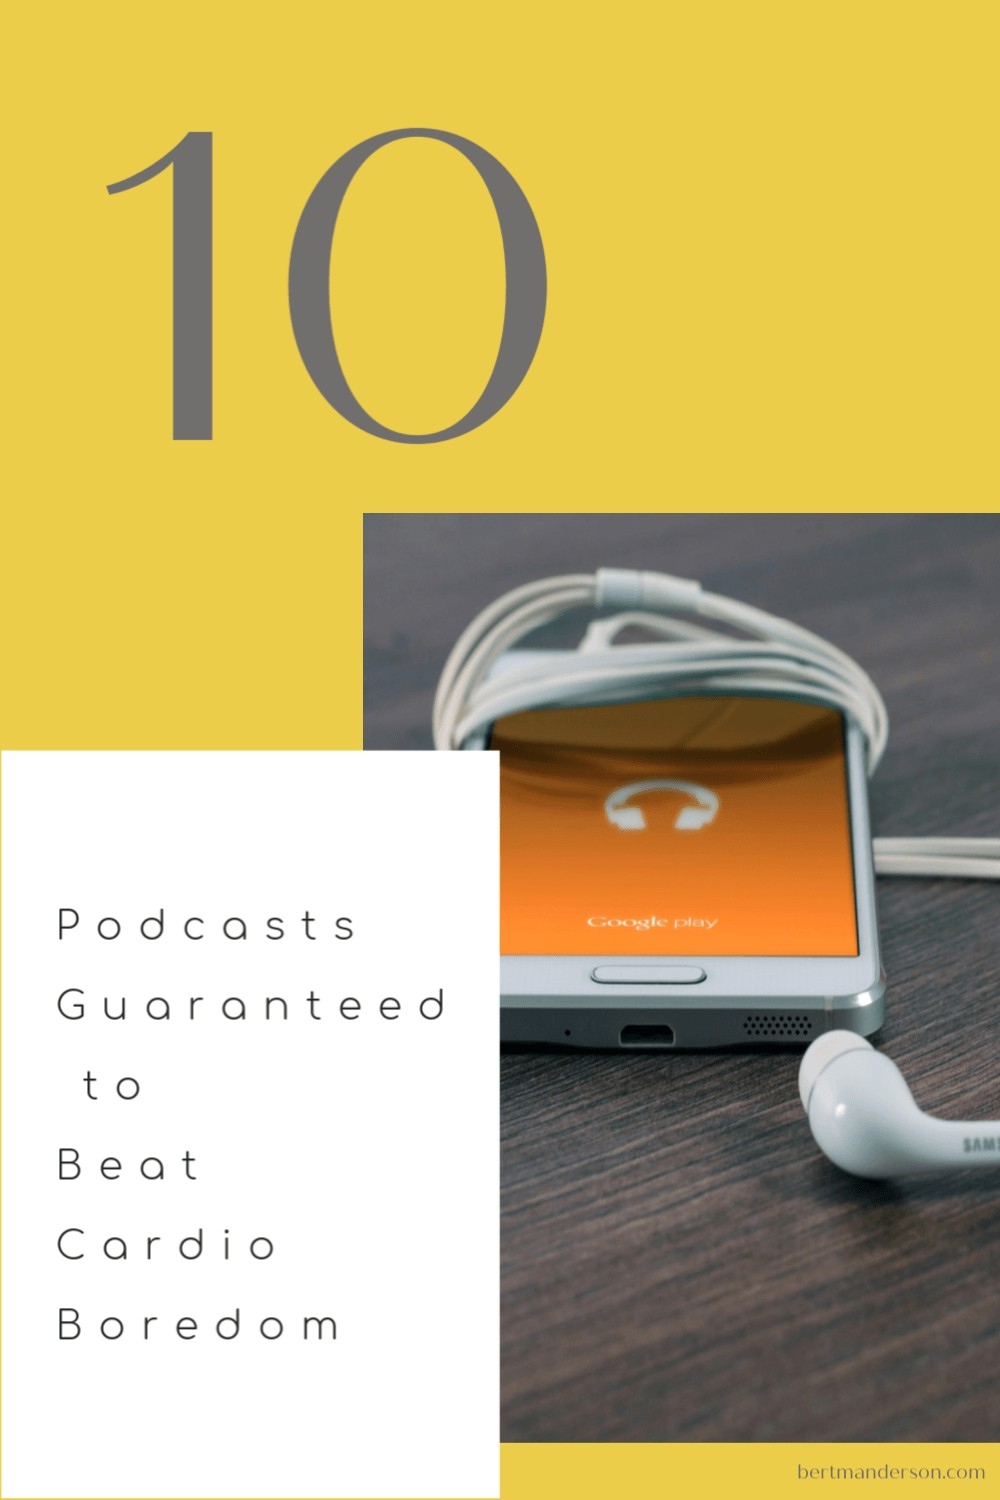 Podcasts to listen to when exercising